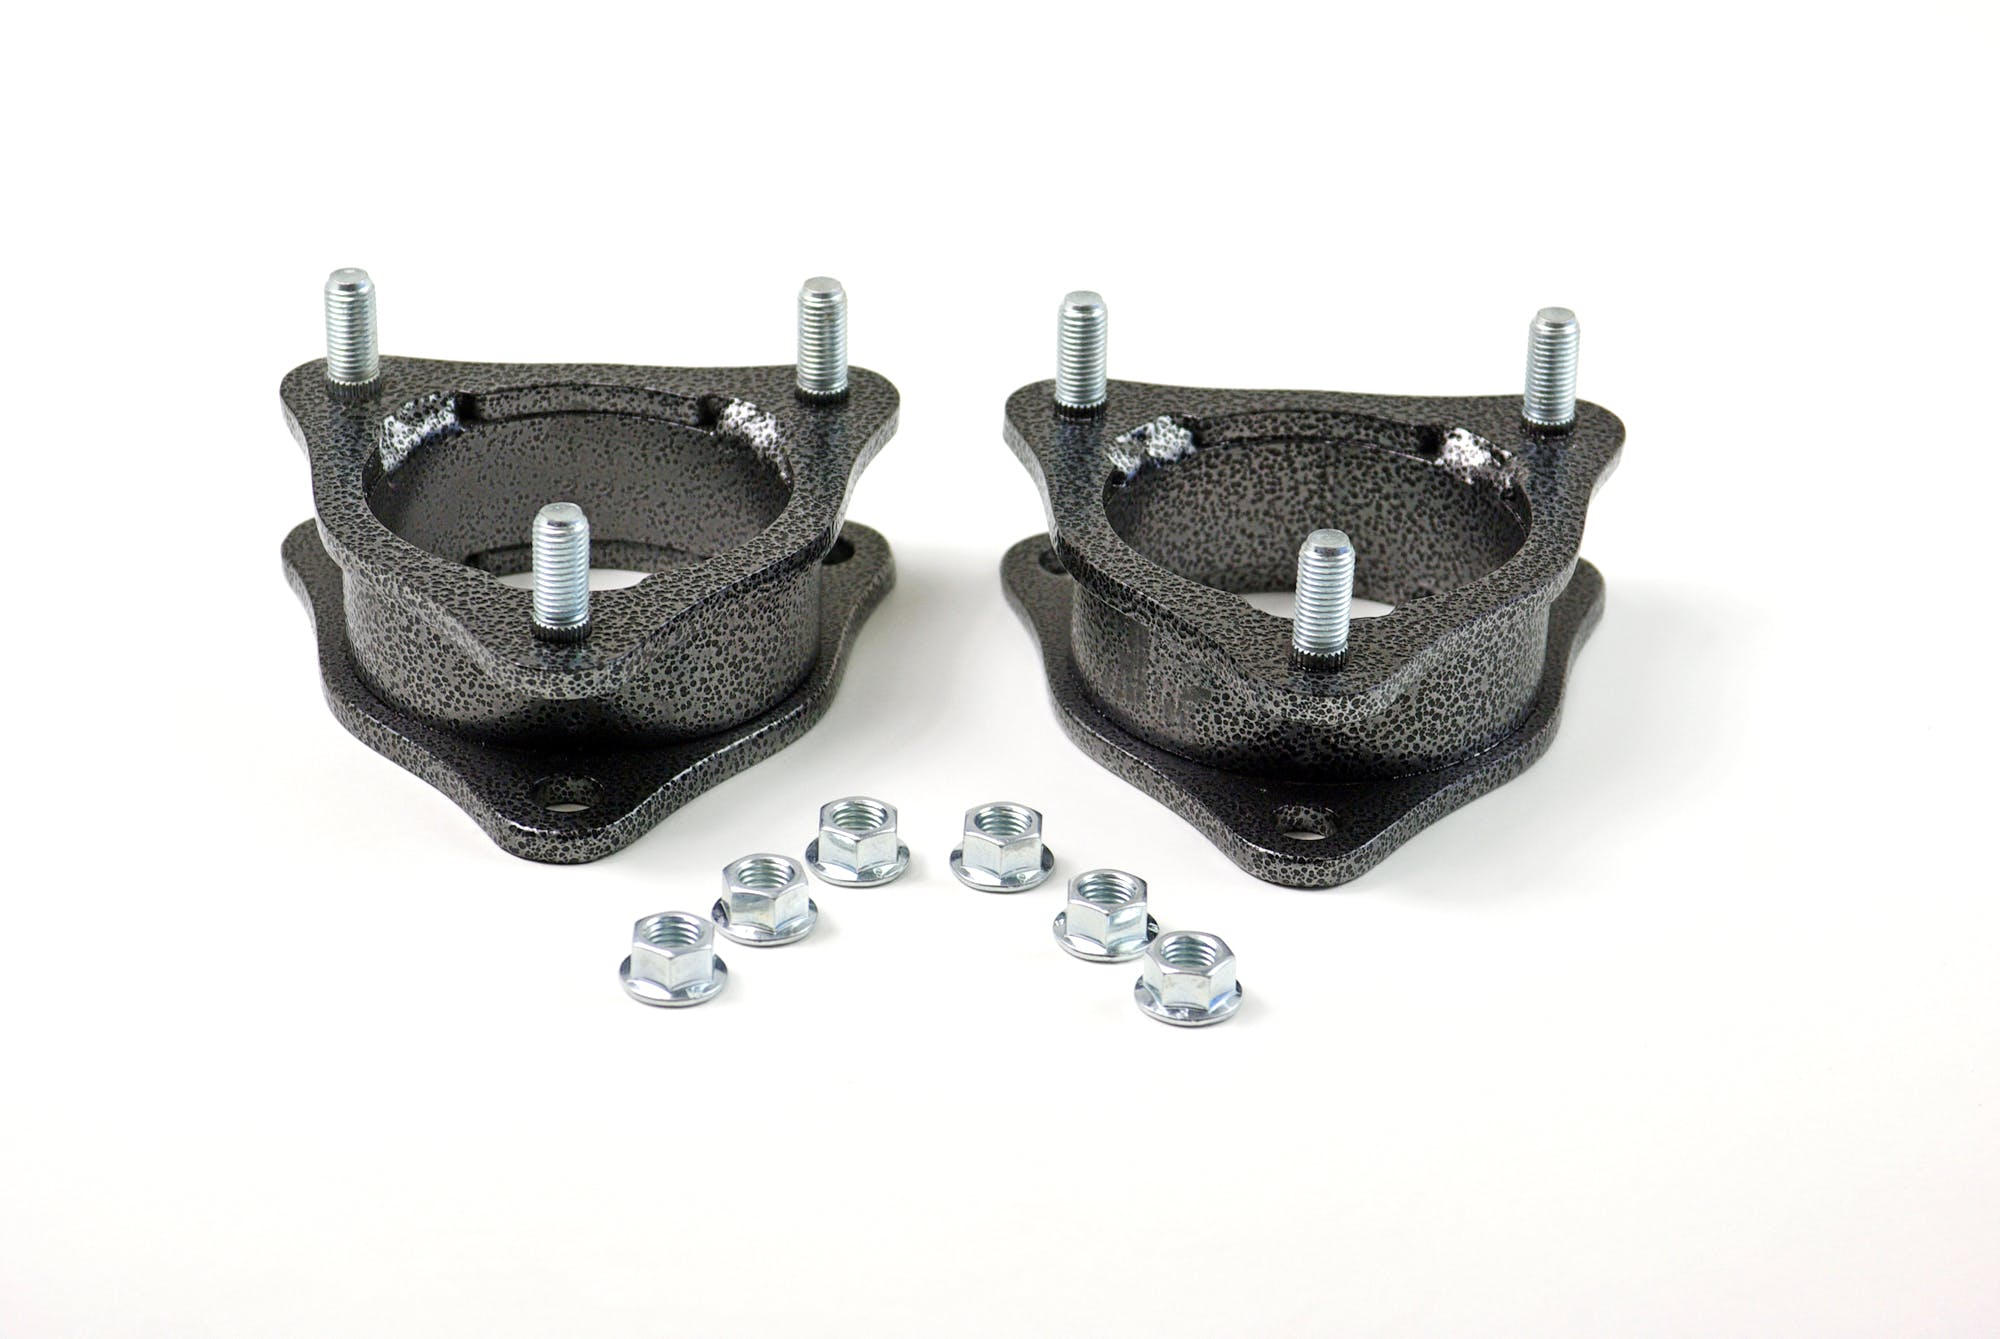 Rugged Off Road 7-106 2.25 Front Leveling Kit